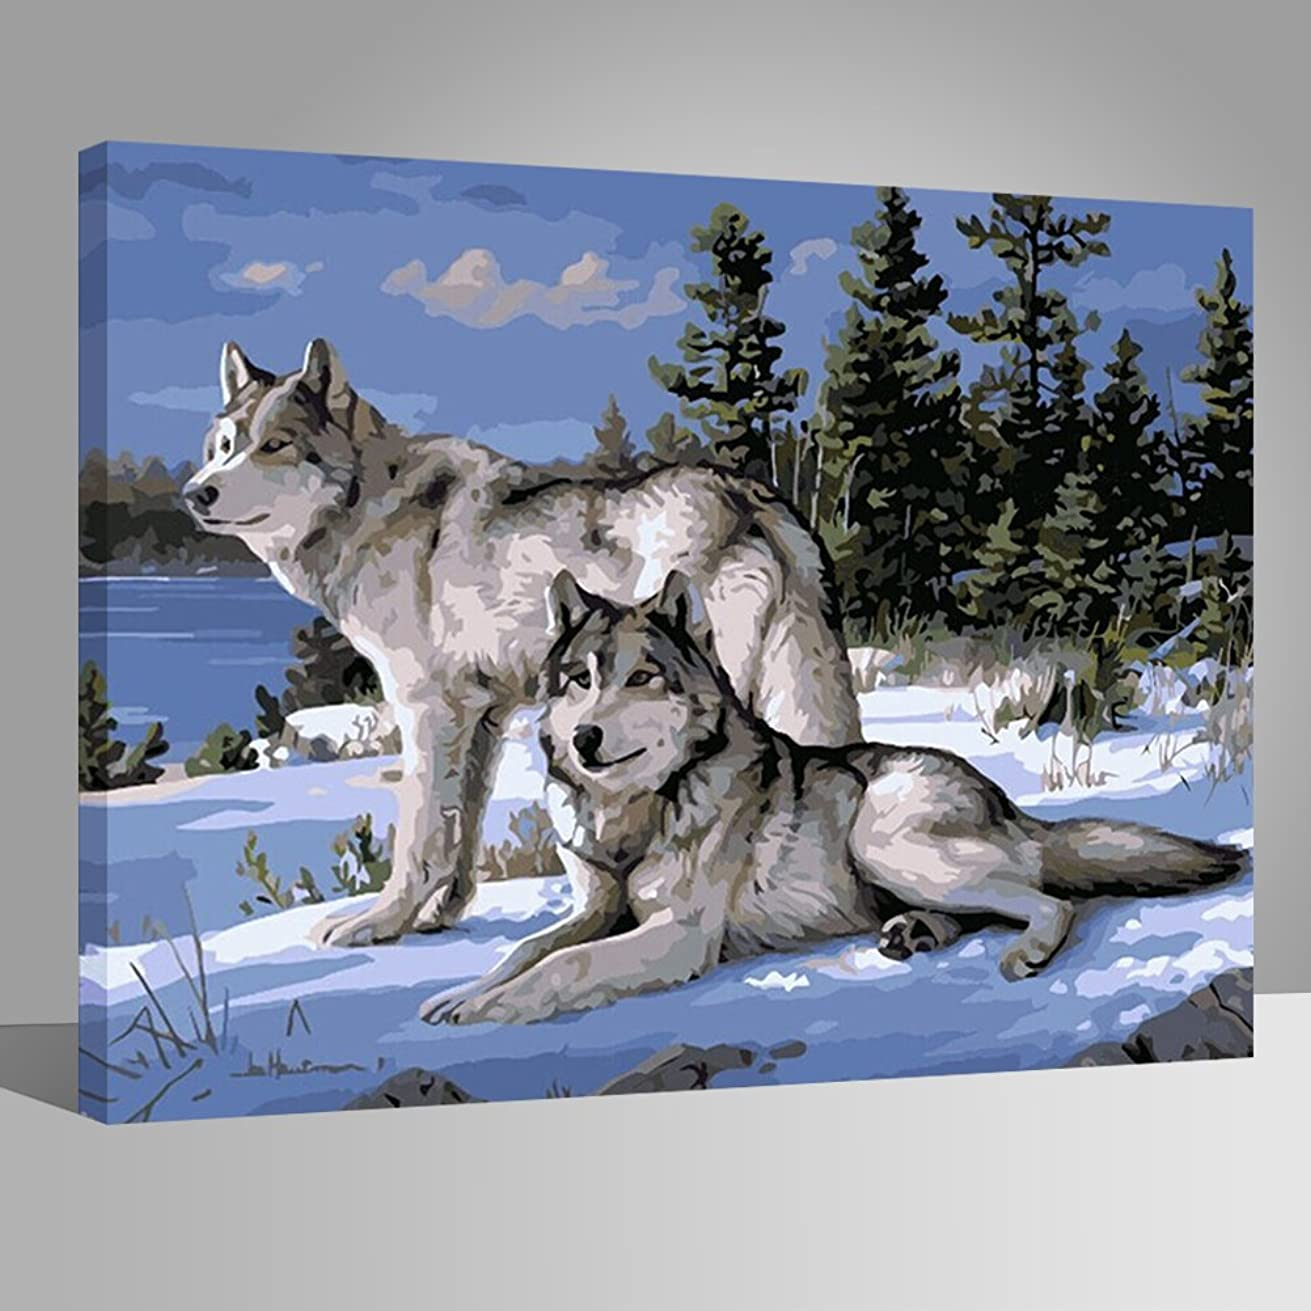 LIUDAO DIY Oil Painting on Canvas Paint by Number Kit for Adult - Animal Wolf -16x20 Inches Wooden Frame